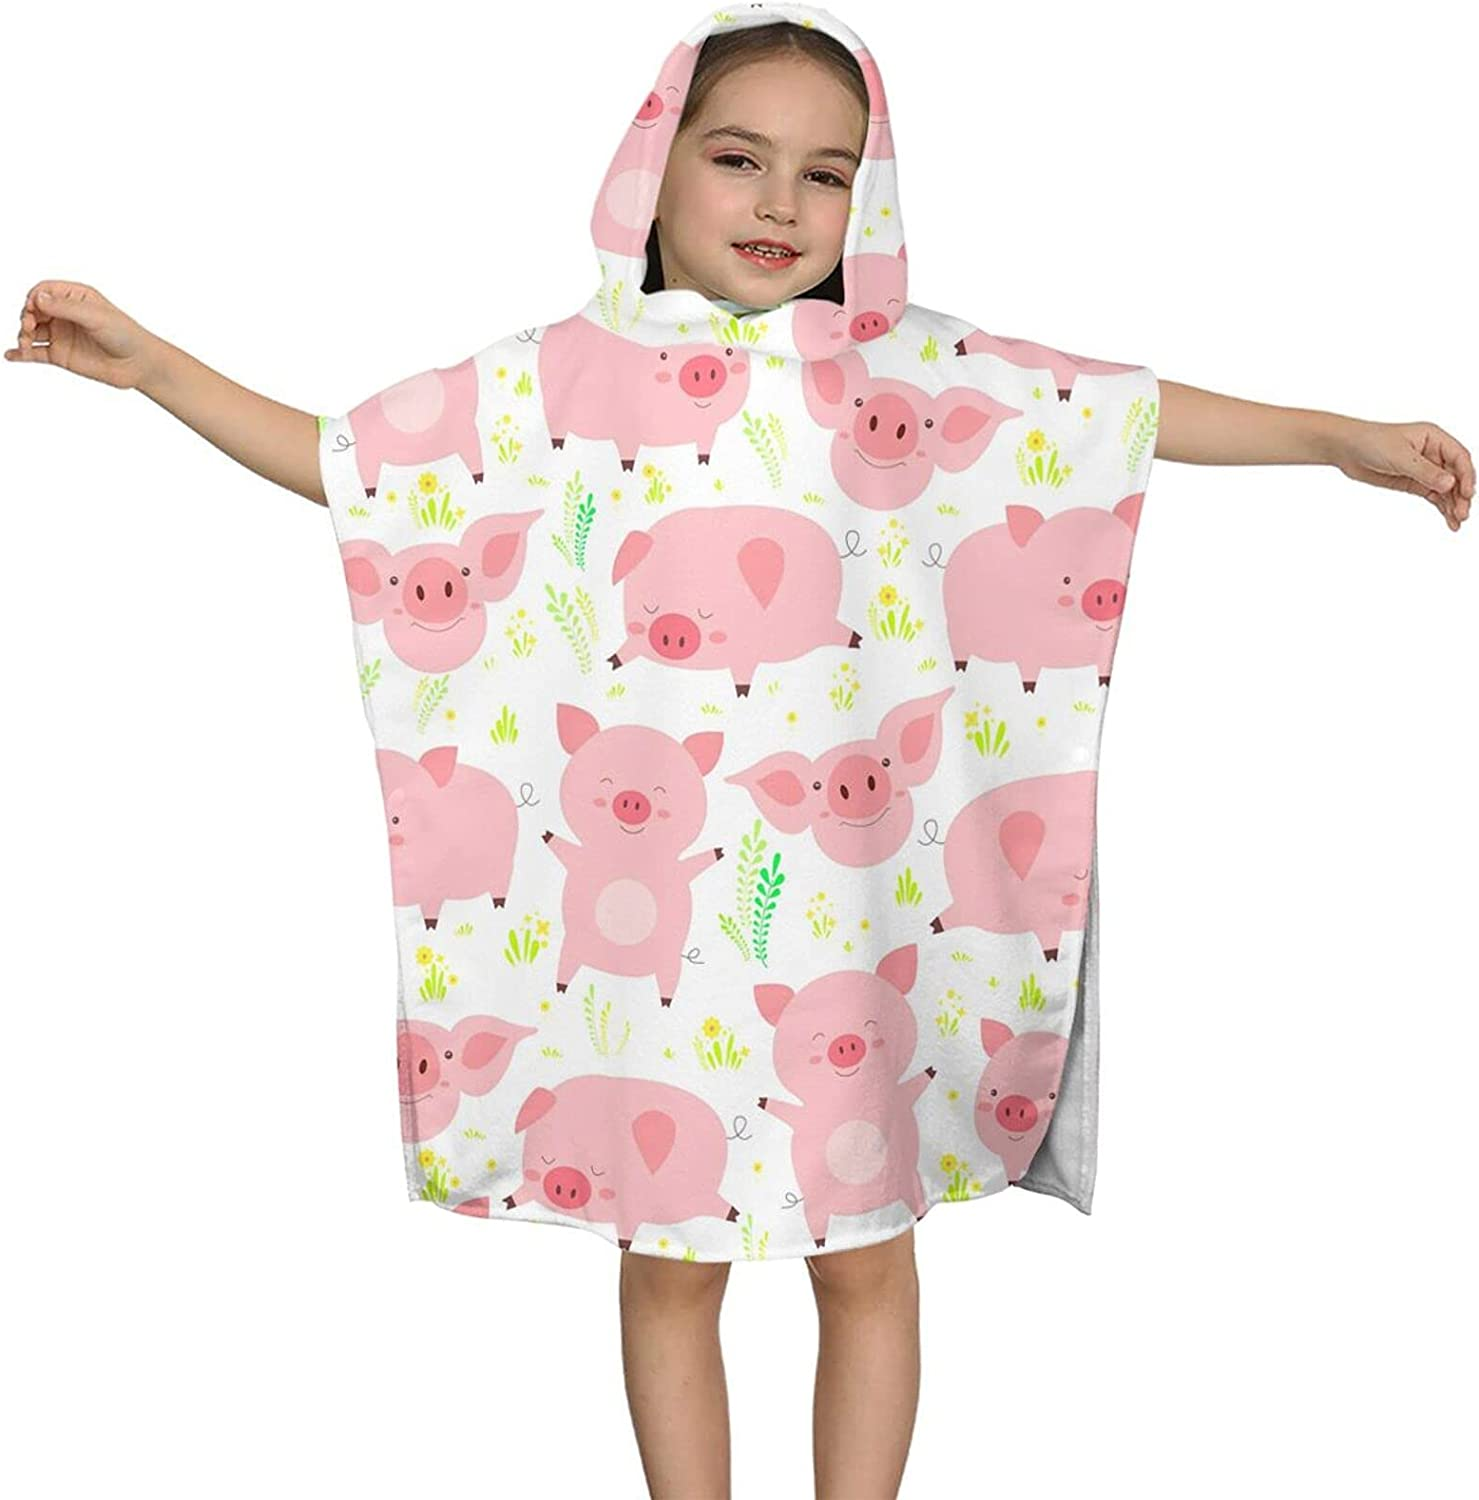 Hooded Beauty products Bath Towel Cute Pig Kids Soft Tow Beach Free shipping anywhere in the nation Wrap